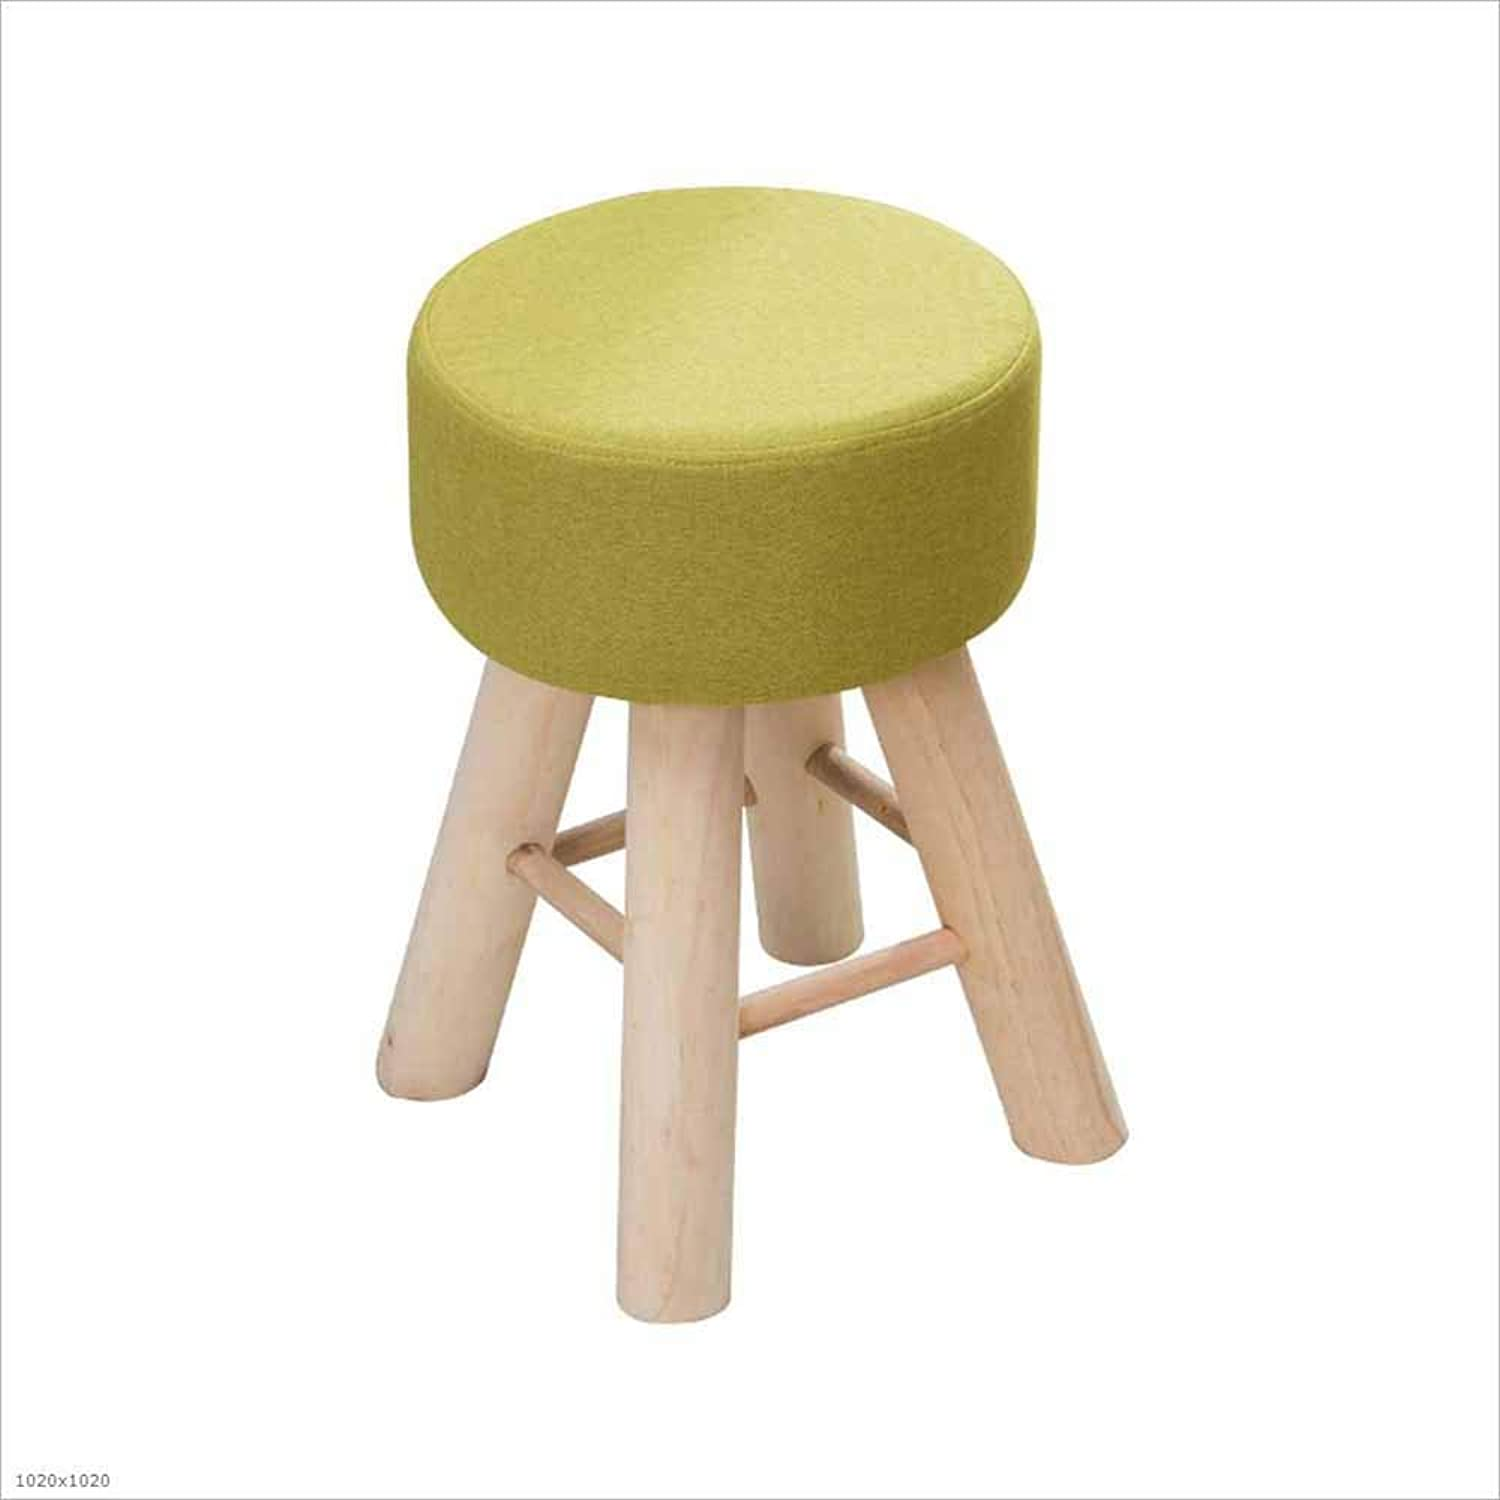 Solid Wood Stool Home High Elastic Cushion Fabric Makeup Stool Adult shoes Bench 43×28Cm, 2